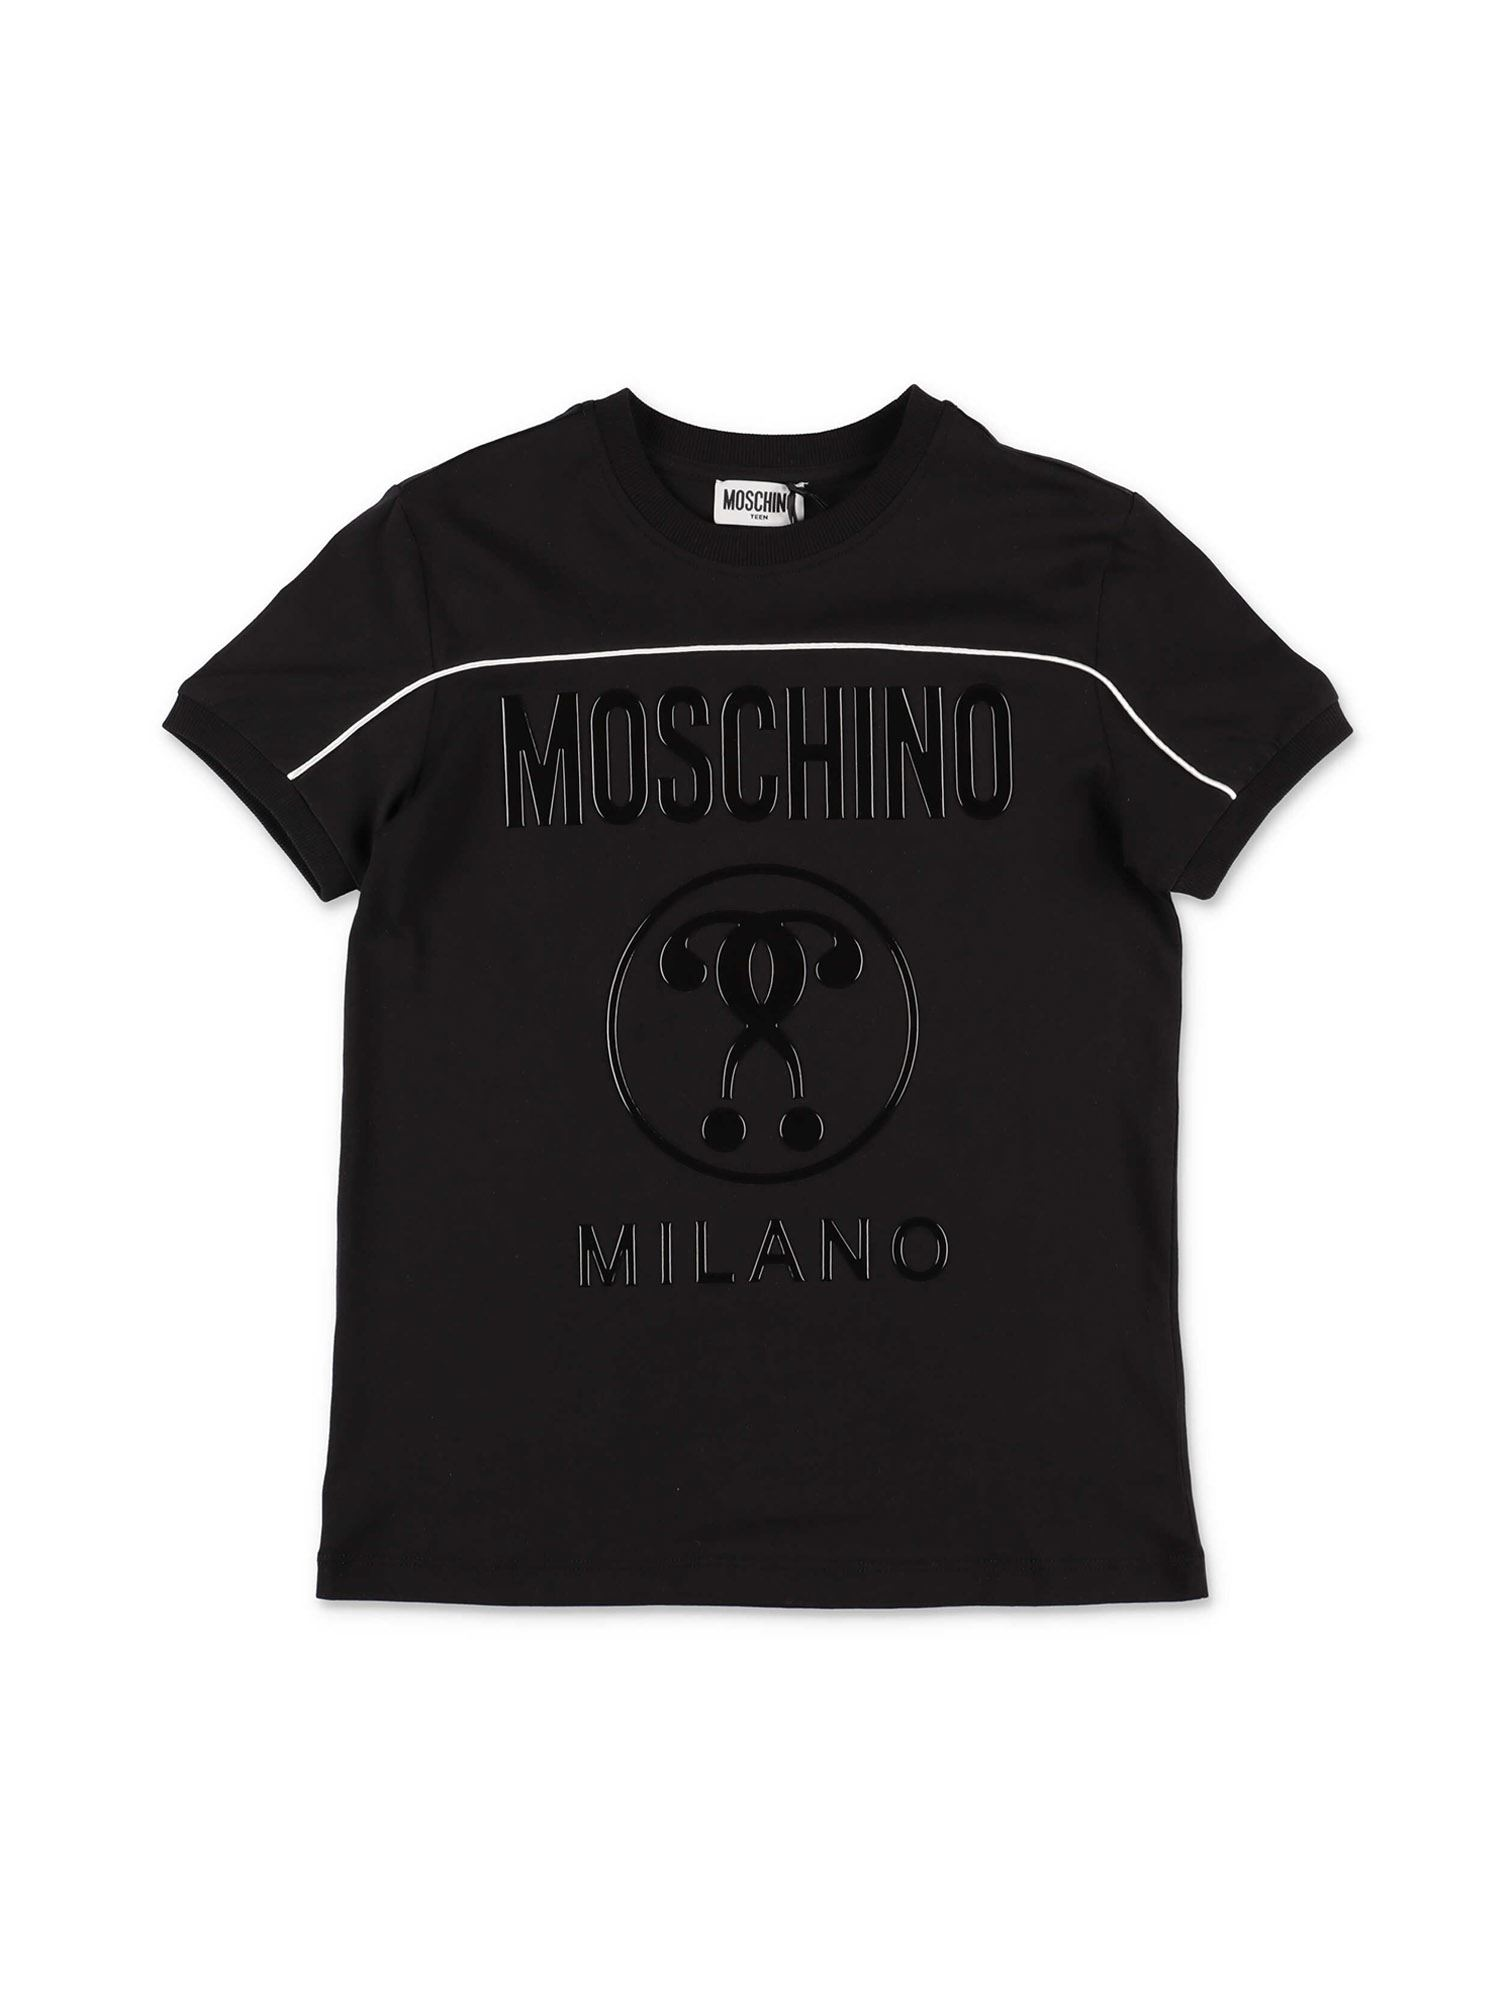 Moschino DOUBLE QUESTION MARK T-SHIRT IN BLACK